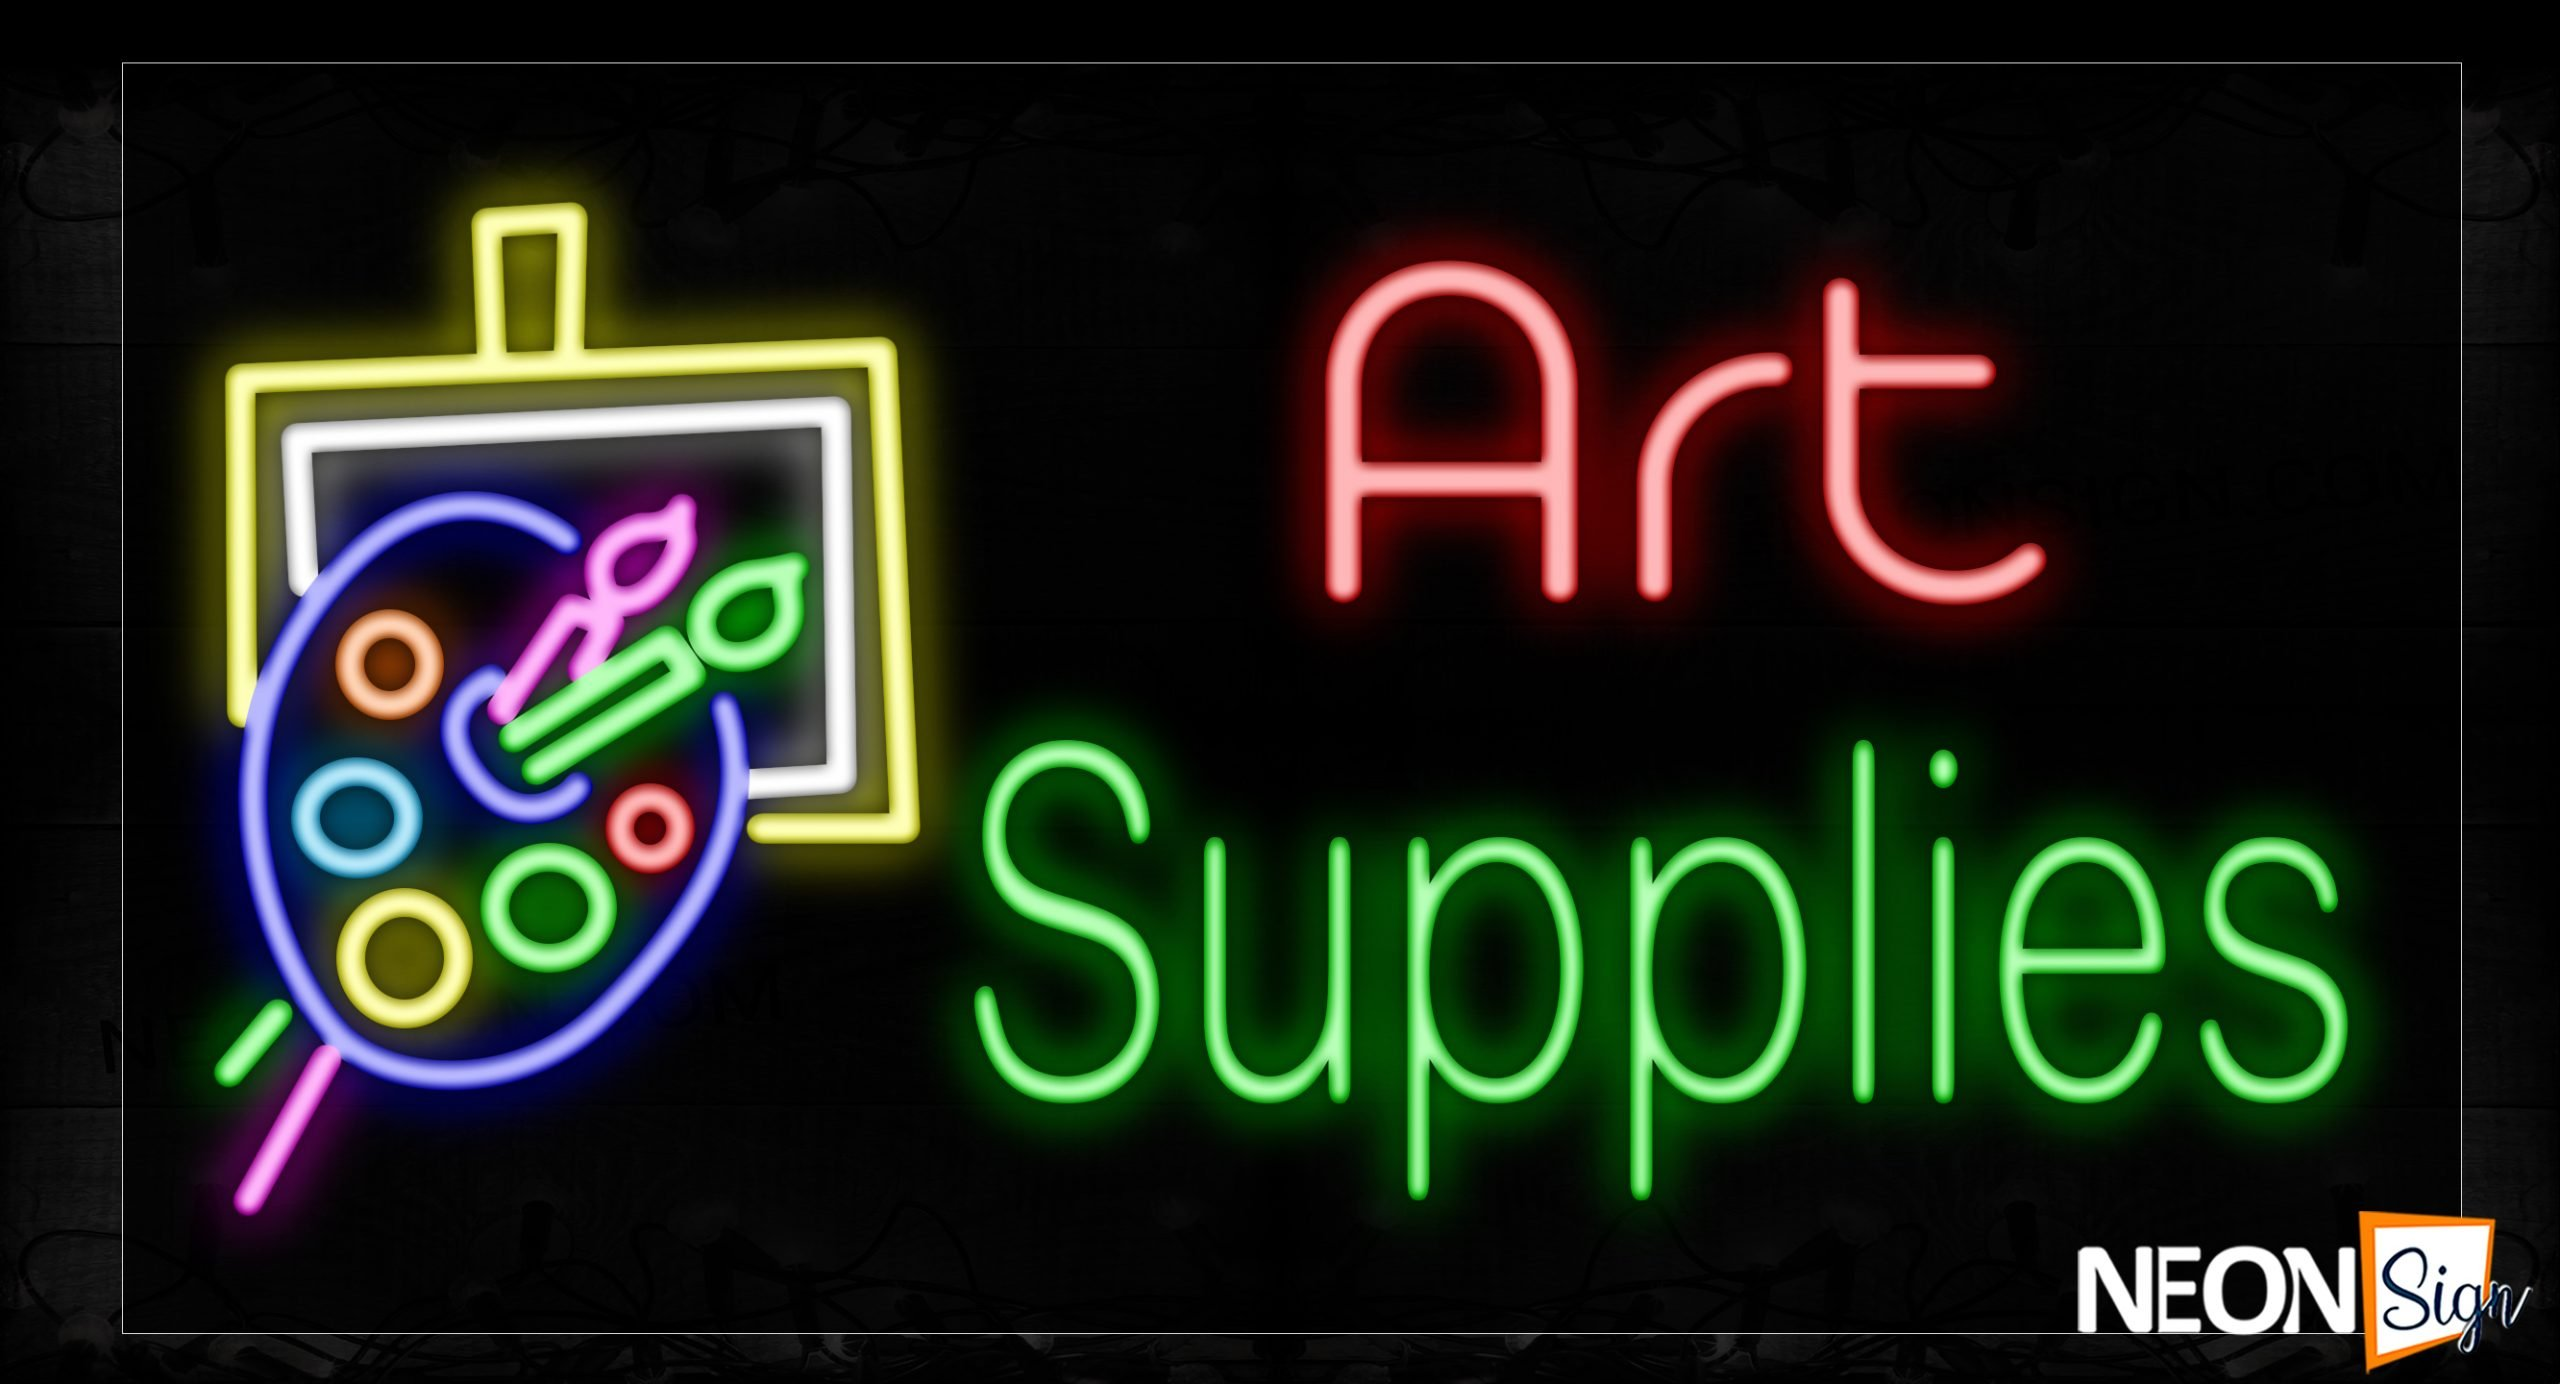 Image of 11657 Art Supplies with logo Neon Signs_20x37 Black Backing